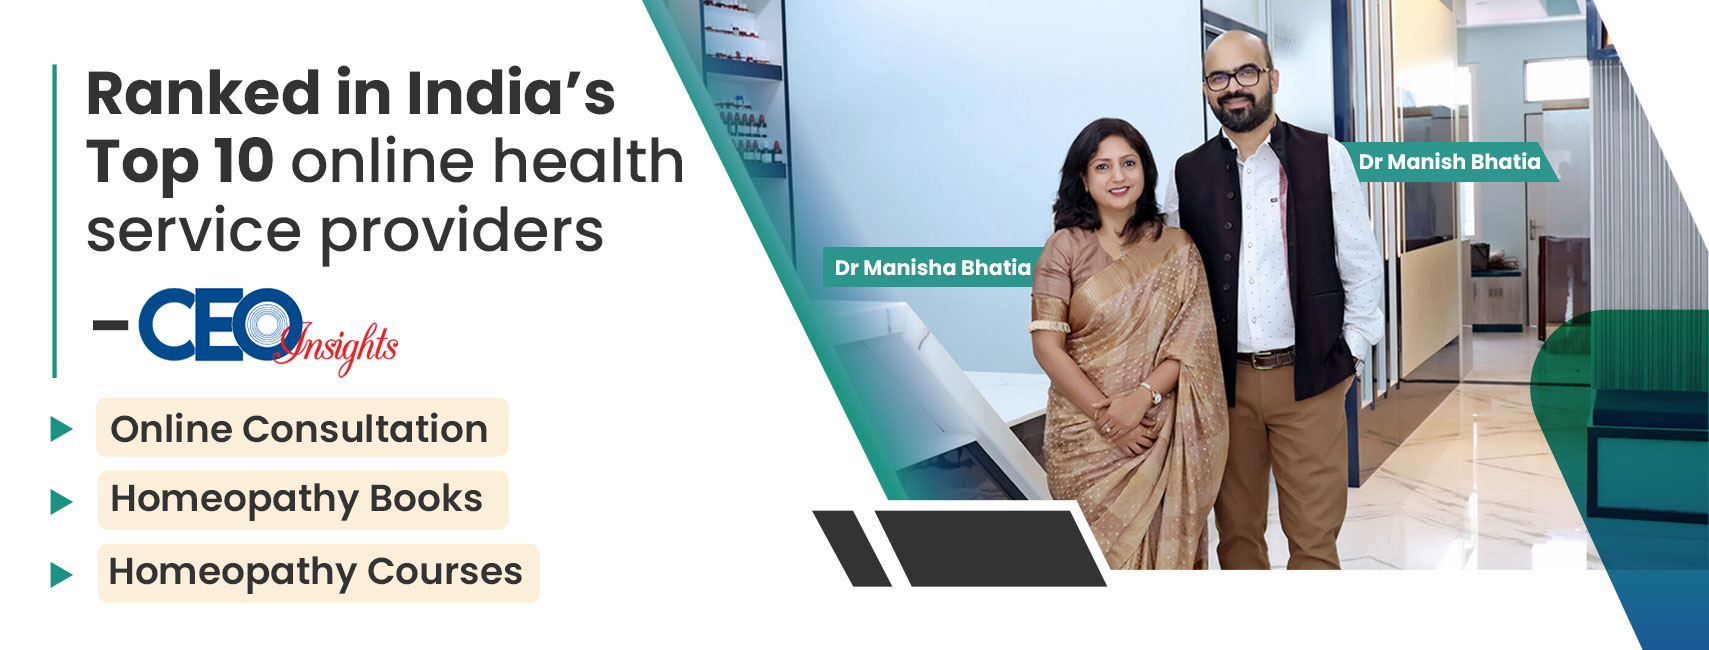 Dr Bhatia's Asha Homeopathy Treatment Center with Online Consultation